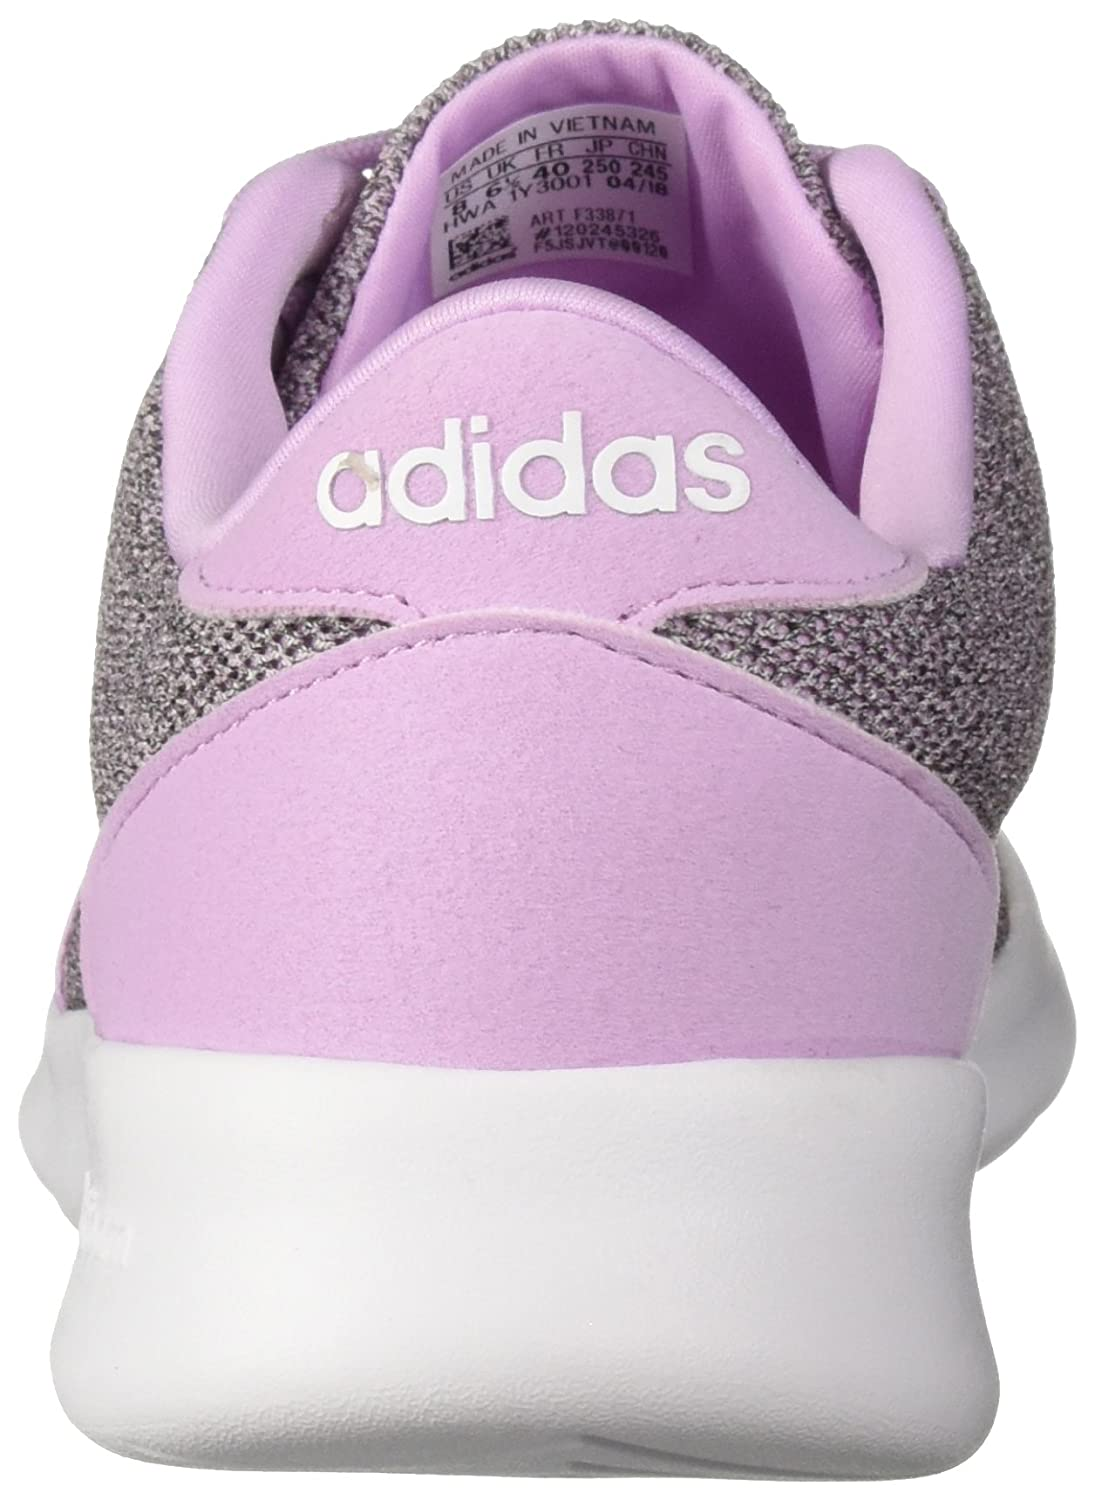 adidas Women's Cf Qt Racer Running Shoe B077XBZYCW 8.5 B(M) US|Clear Lilac/White/Black